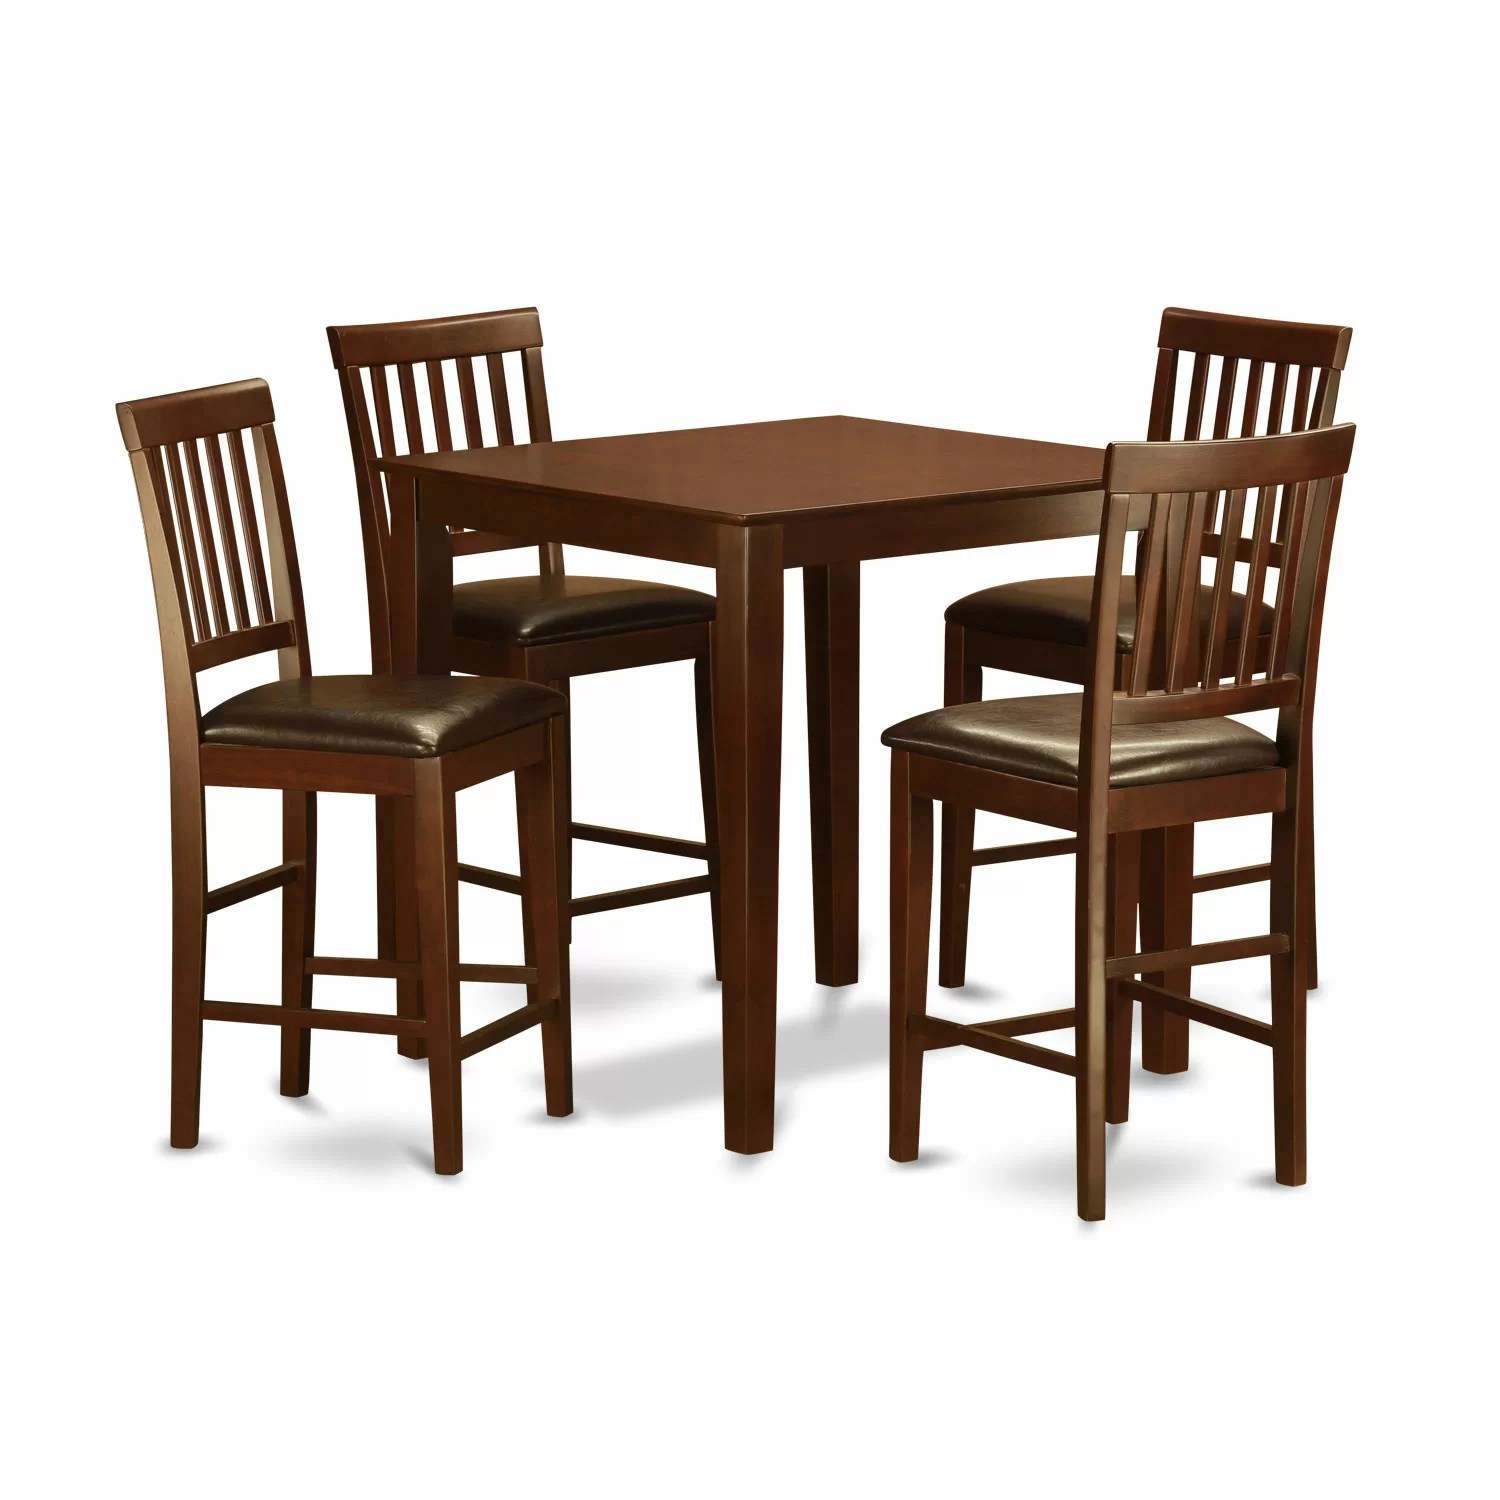 Pub Table With Chairs Wooden Importers 3 Piece Counter Height Pub Table Set